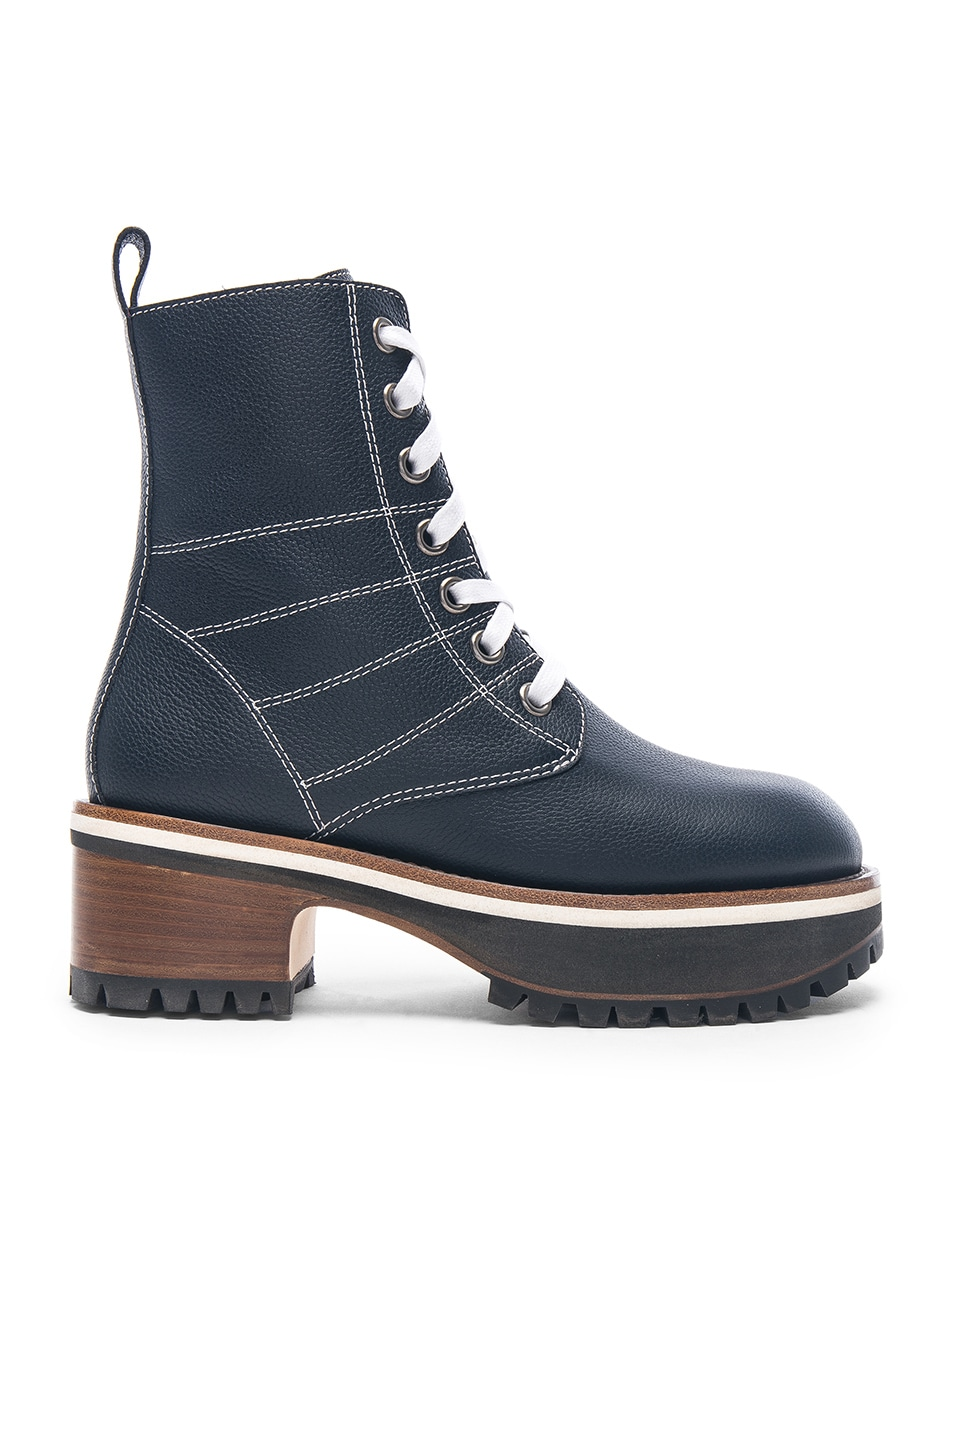 Sies marjan Leather Jessa Combat Boots in . 11A17